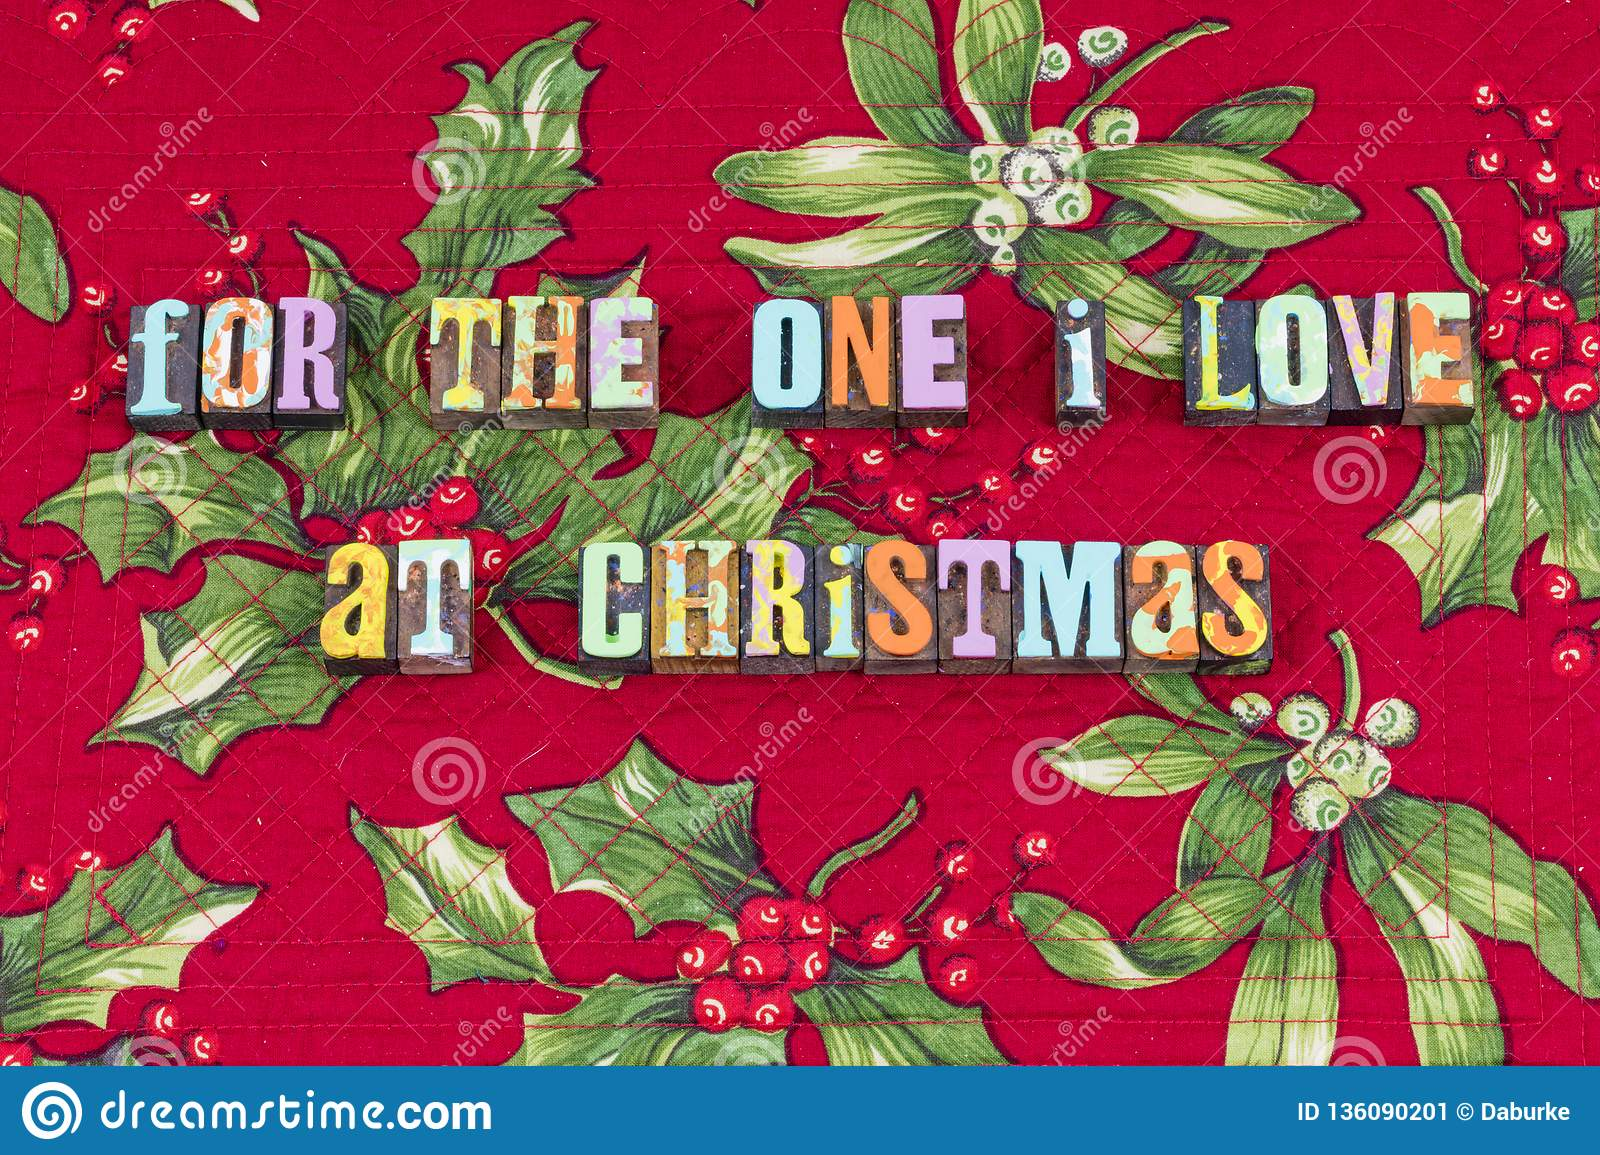 Love special Christmas family life typography